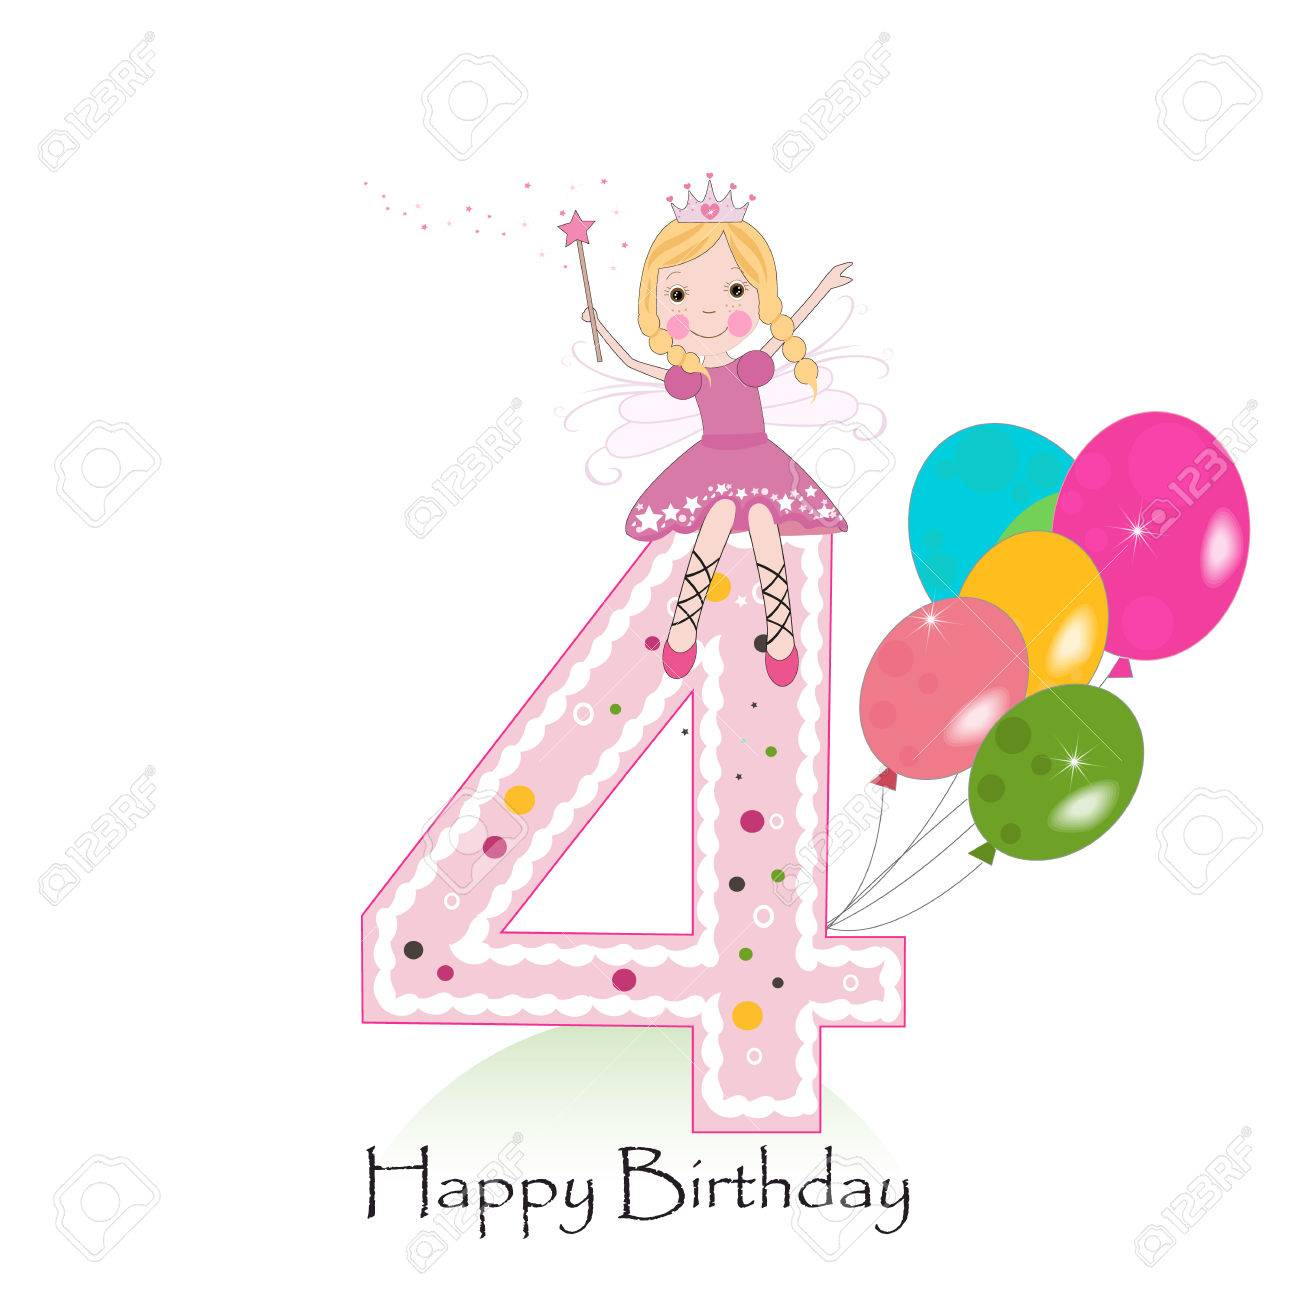 4th birthday clipart ; 71929991-happy-fourth-birthday-greeting-card-with-fairy-tale